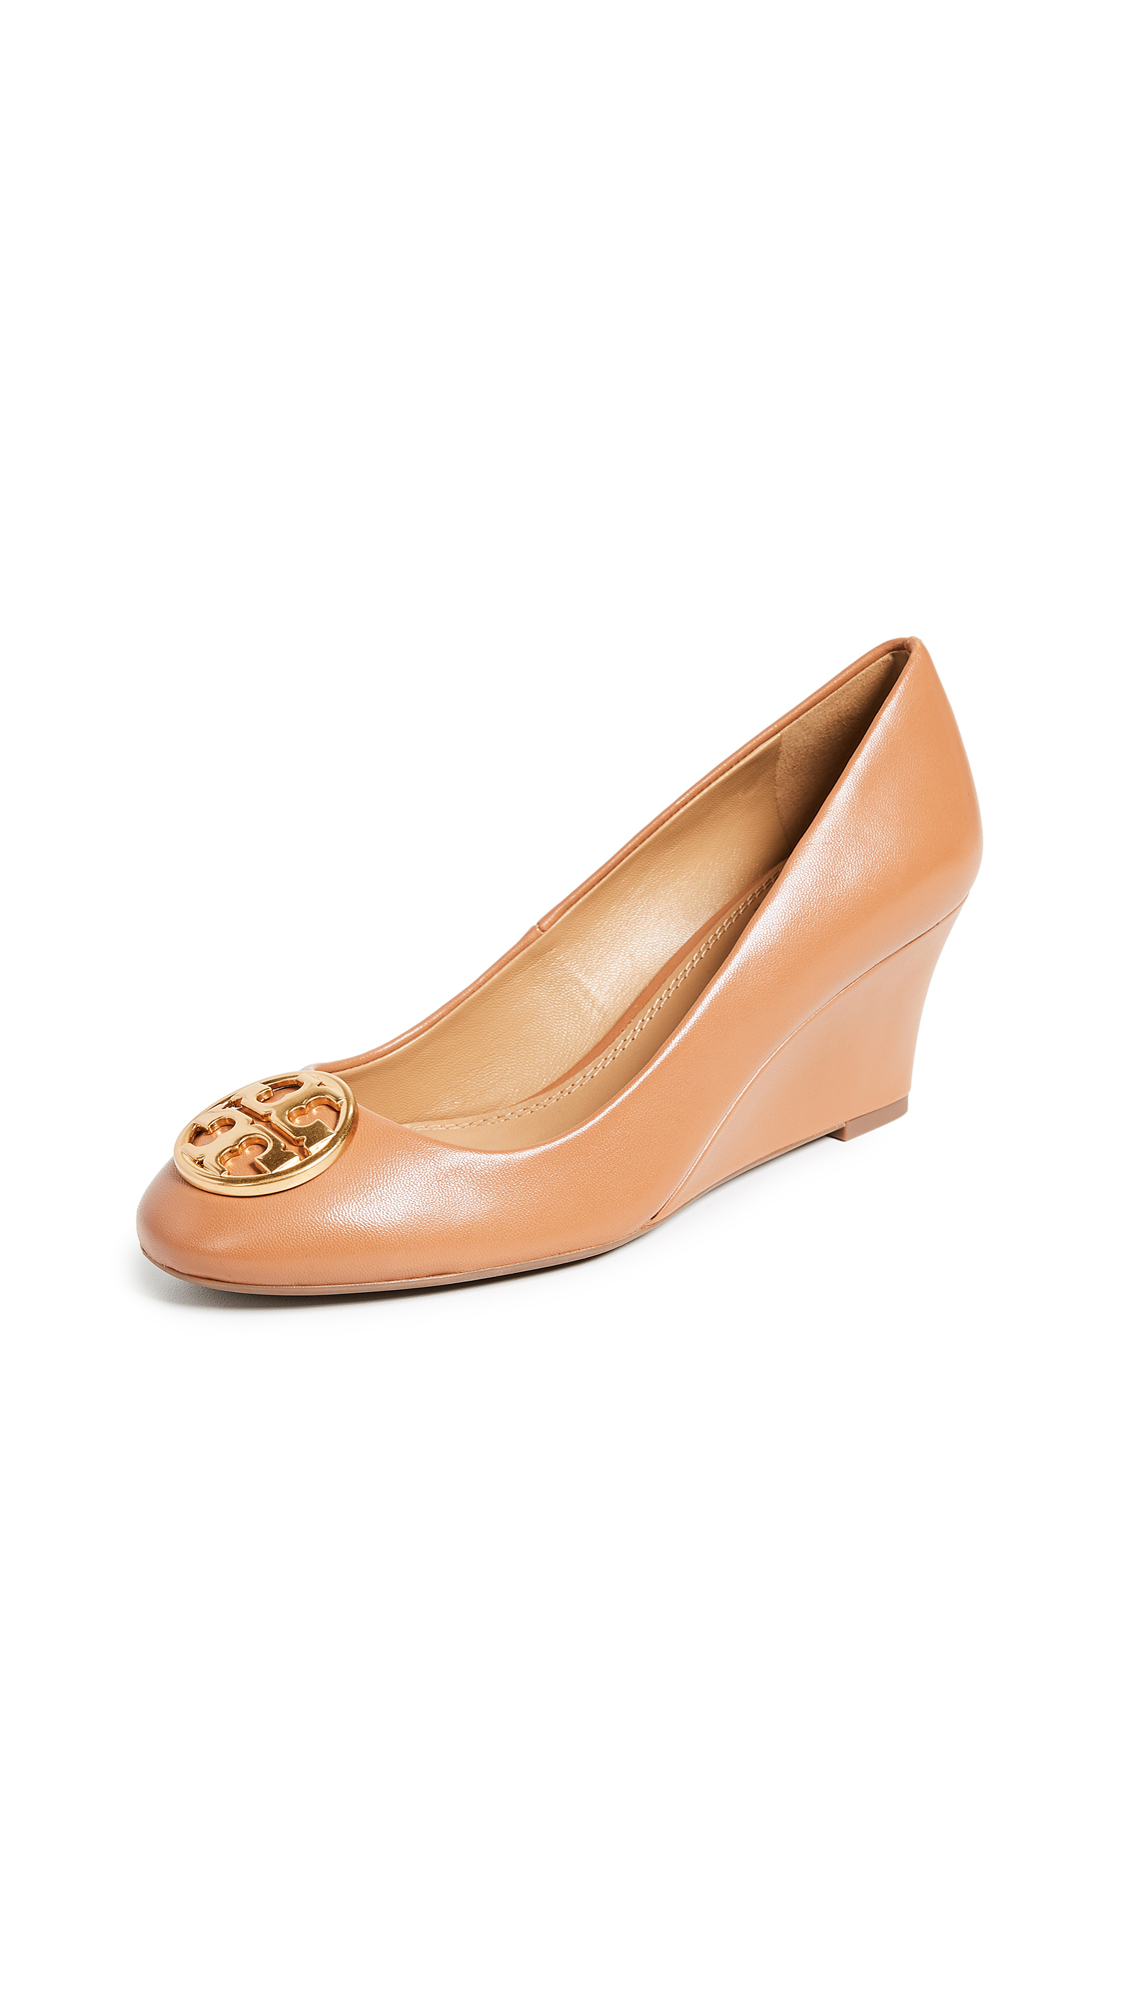 Tory Burch Chelsea 65mm Wedges - Tan